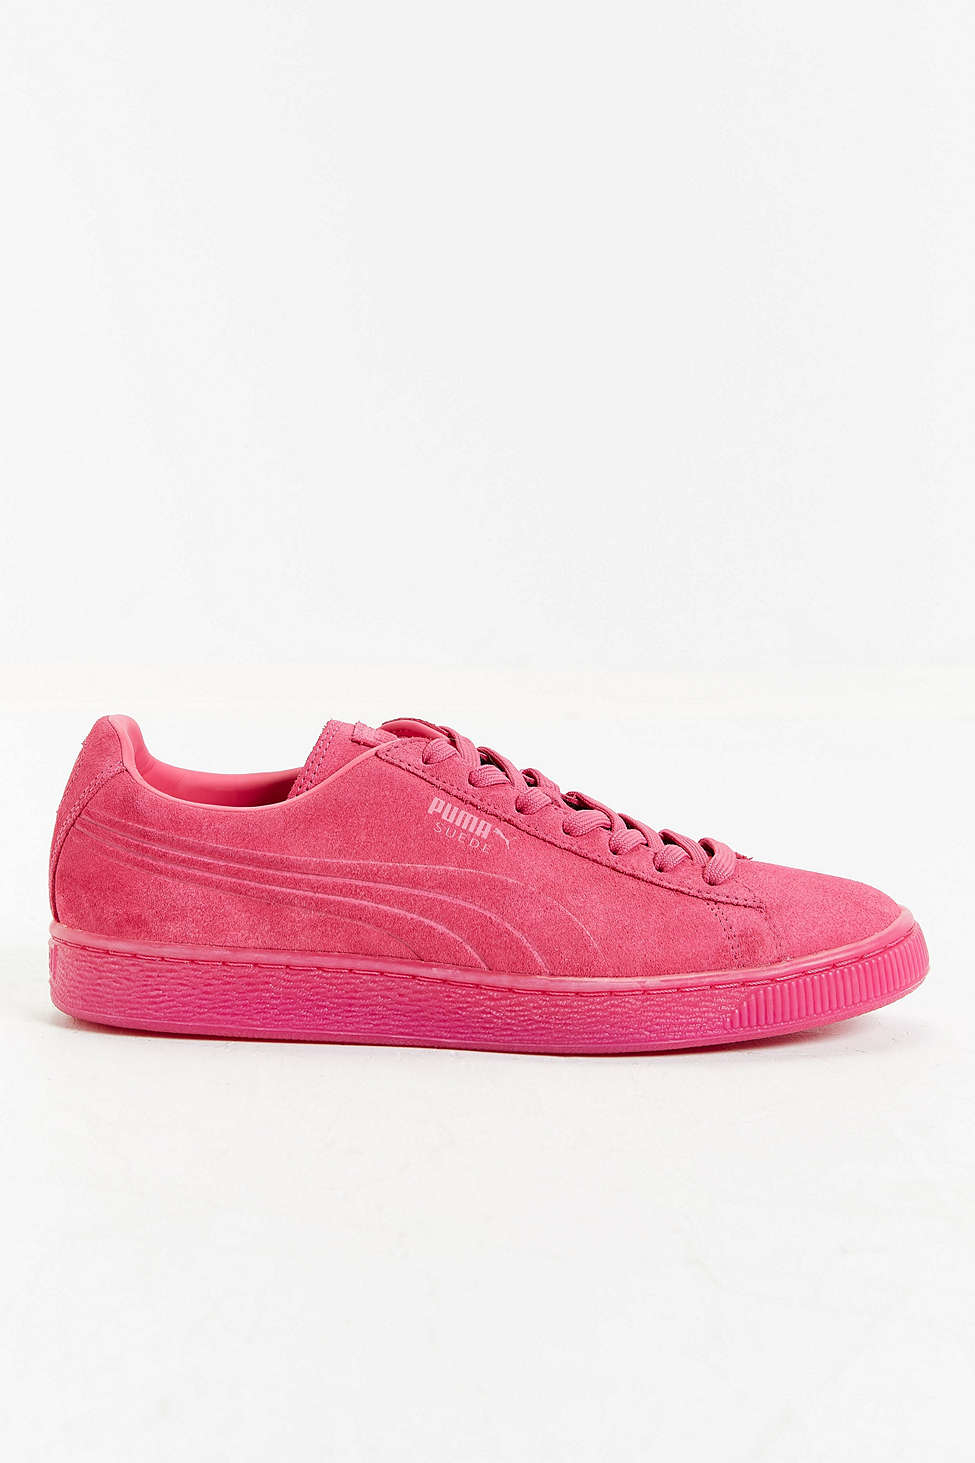 puma suede mono sneaker in pink lyst. Black Bedroom Furniture Sets. Home Design Ideas